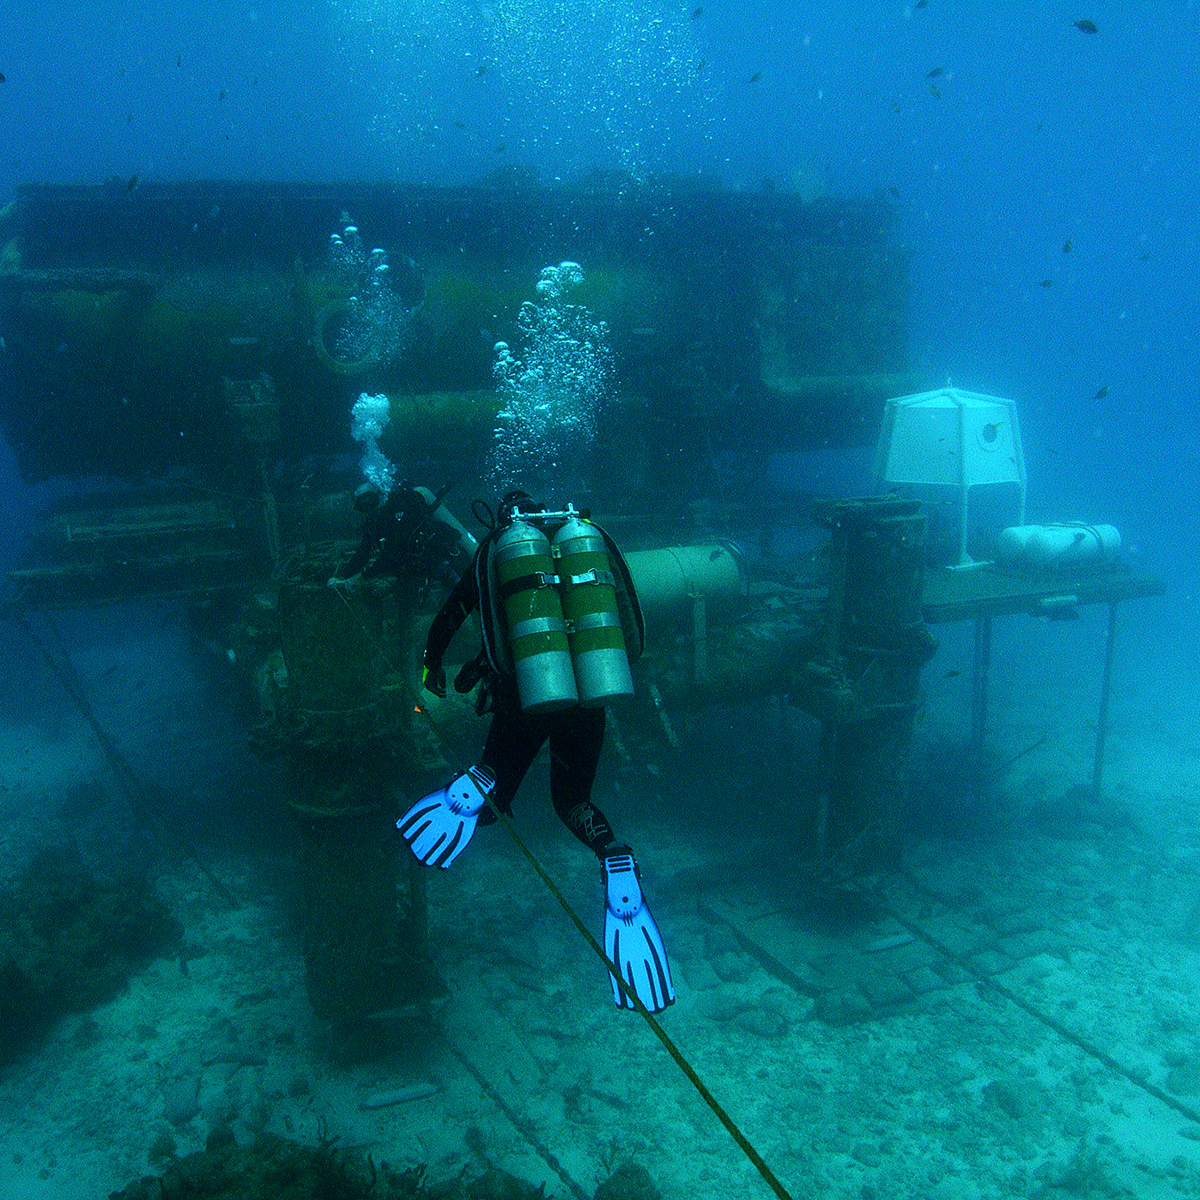 2019 Aquarius Undersea Laboratory Expedition - This expedition will bring SCUBA-certified veterans to Aquarius Reef Base, an underwater habitat located 5.4 miles off the coast of Key Largo, Florida in the Florida Keys National Marine Sanctuary. It is deployed 62 feet below the surface on Conch Reef and is one of only 3 undersea laboratories in the world dedicated to science and education. Before and during the overnight stay in the habitat, Team USX will be undergoing training and research in local ecology and underwater physiology. More details to follow soon.